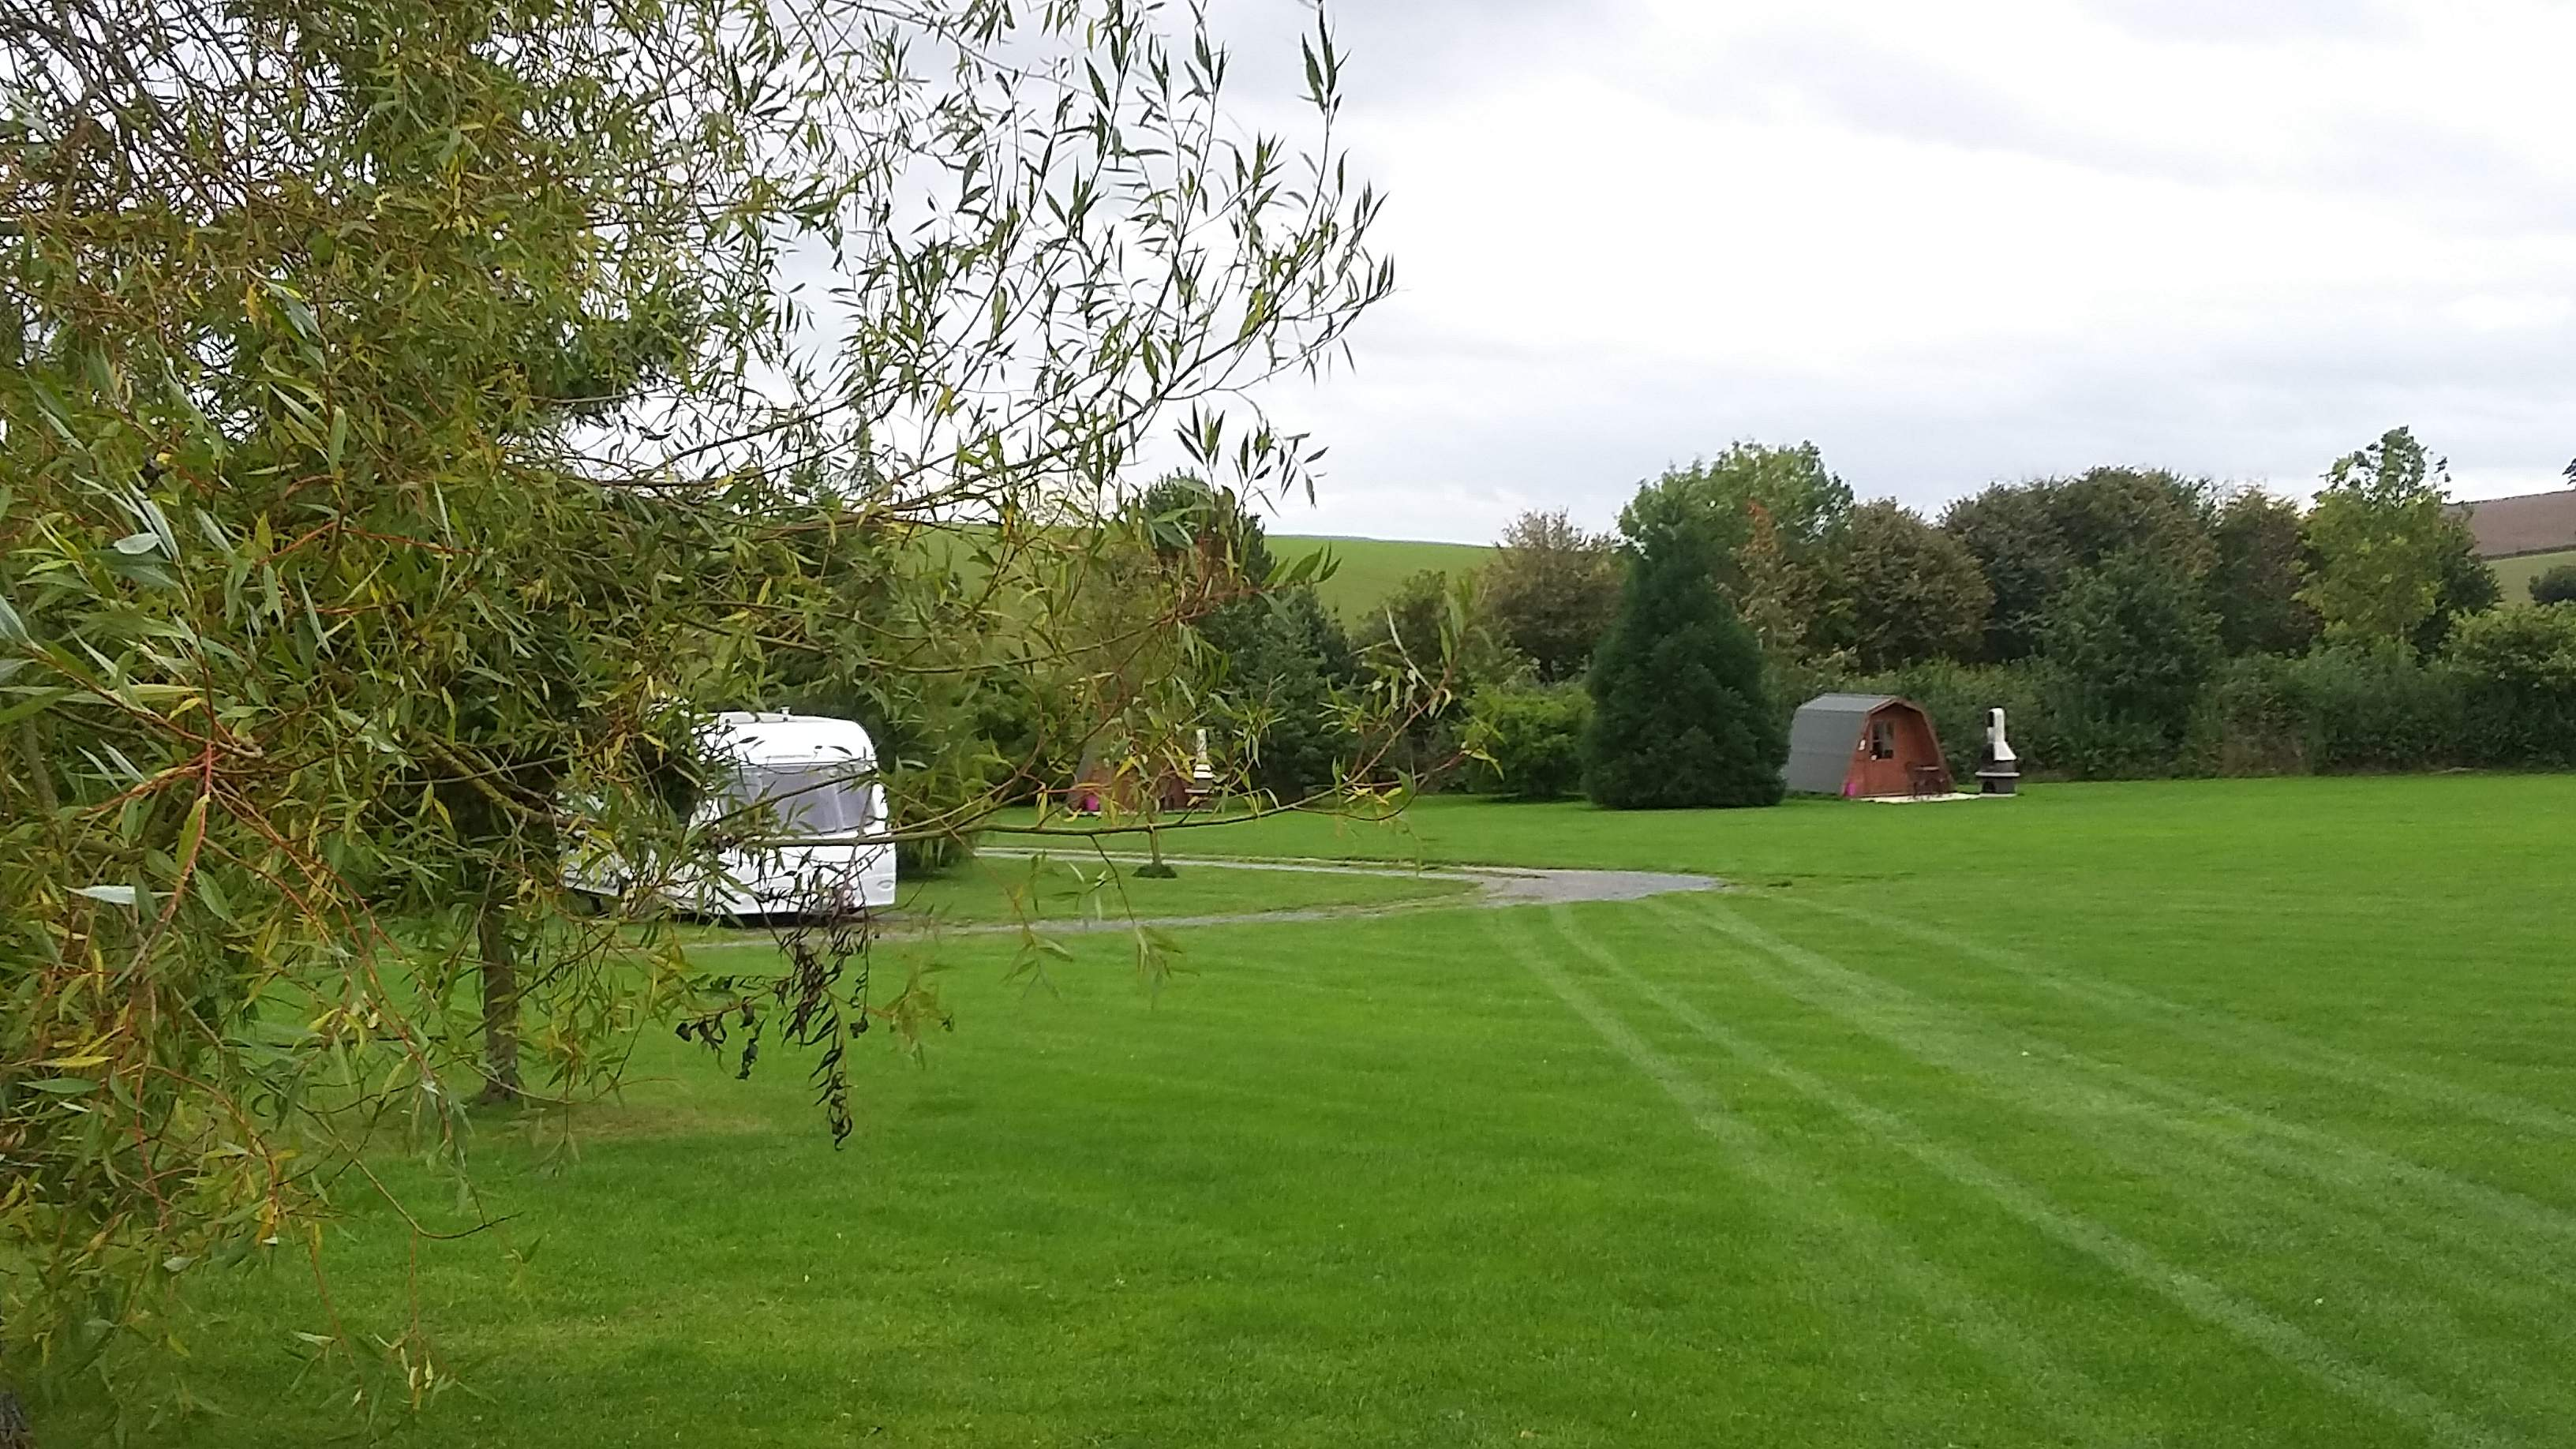 Hard Standing Pitch & Glamping Pod